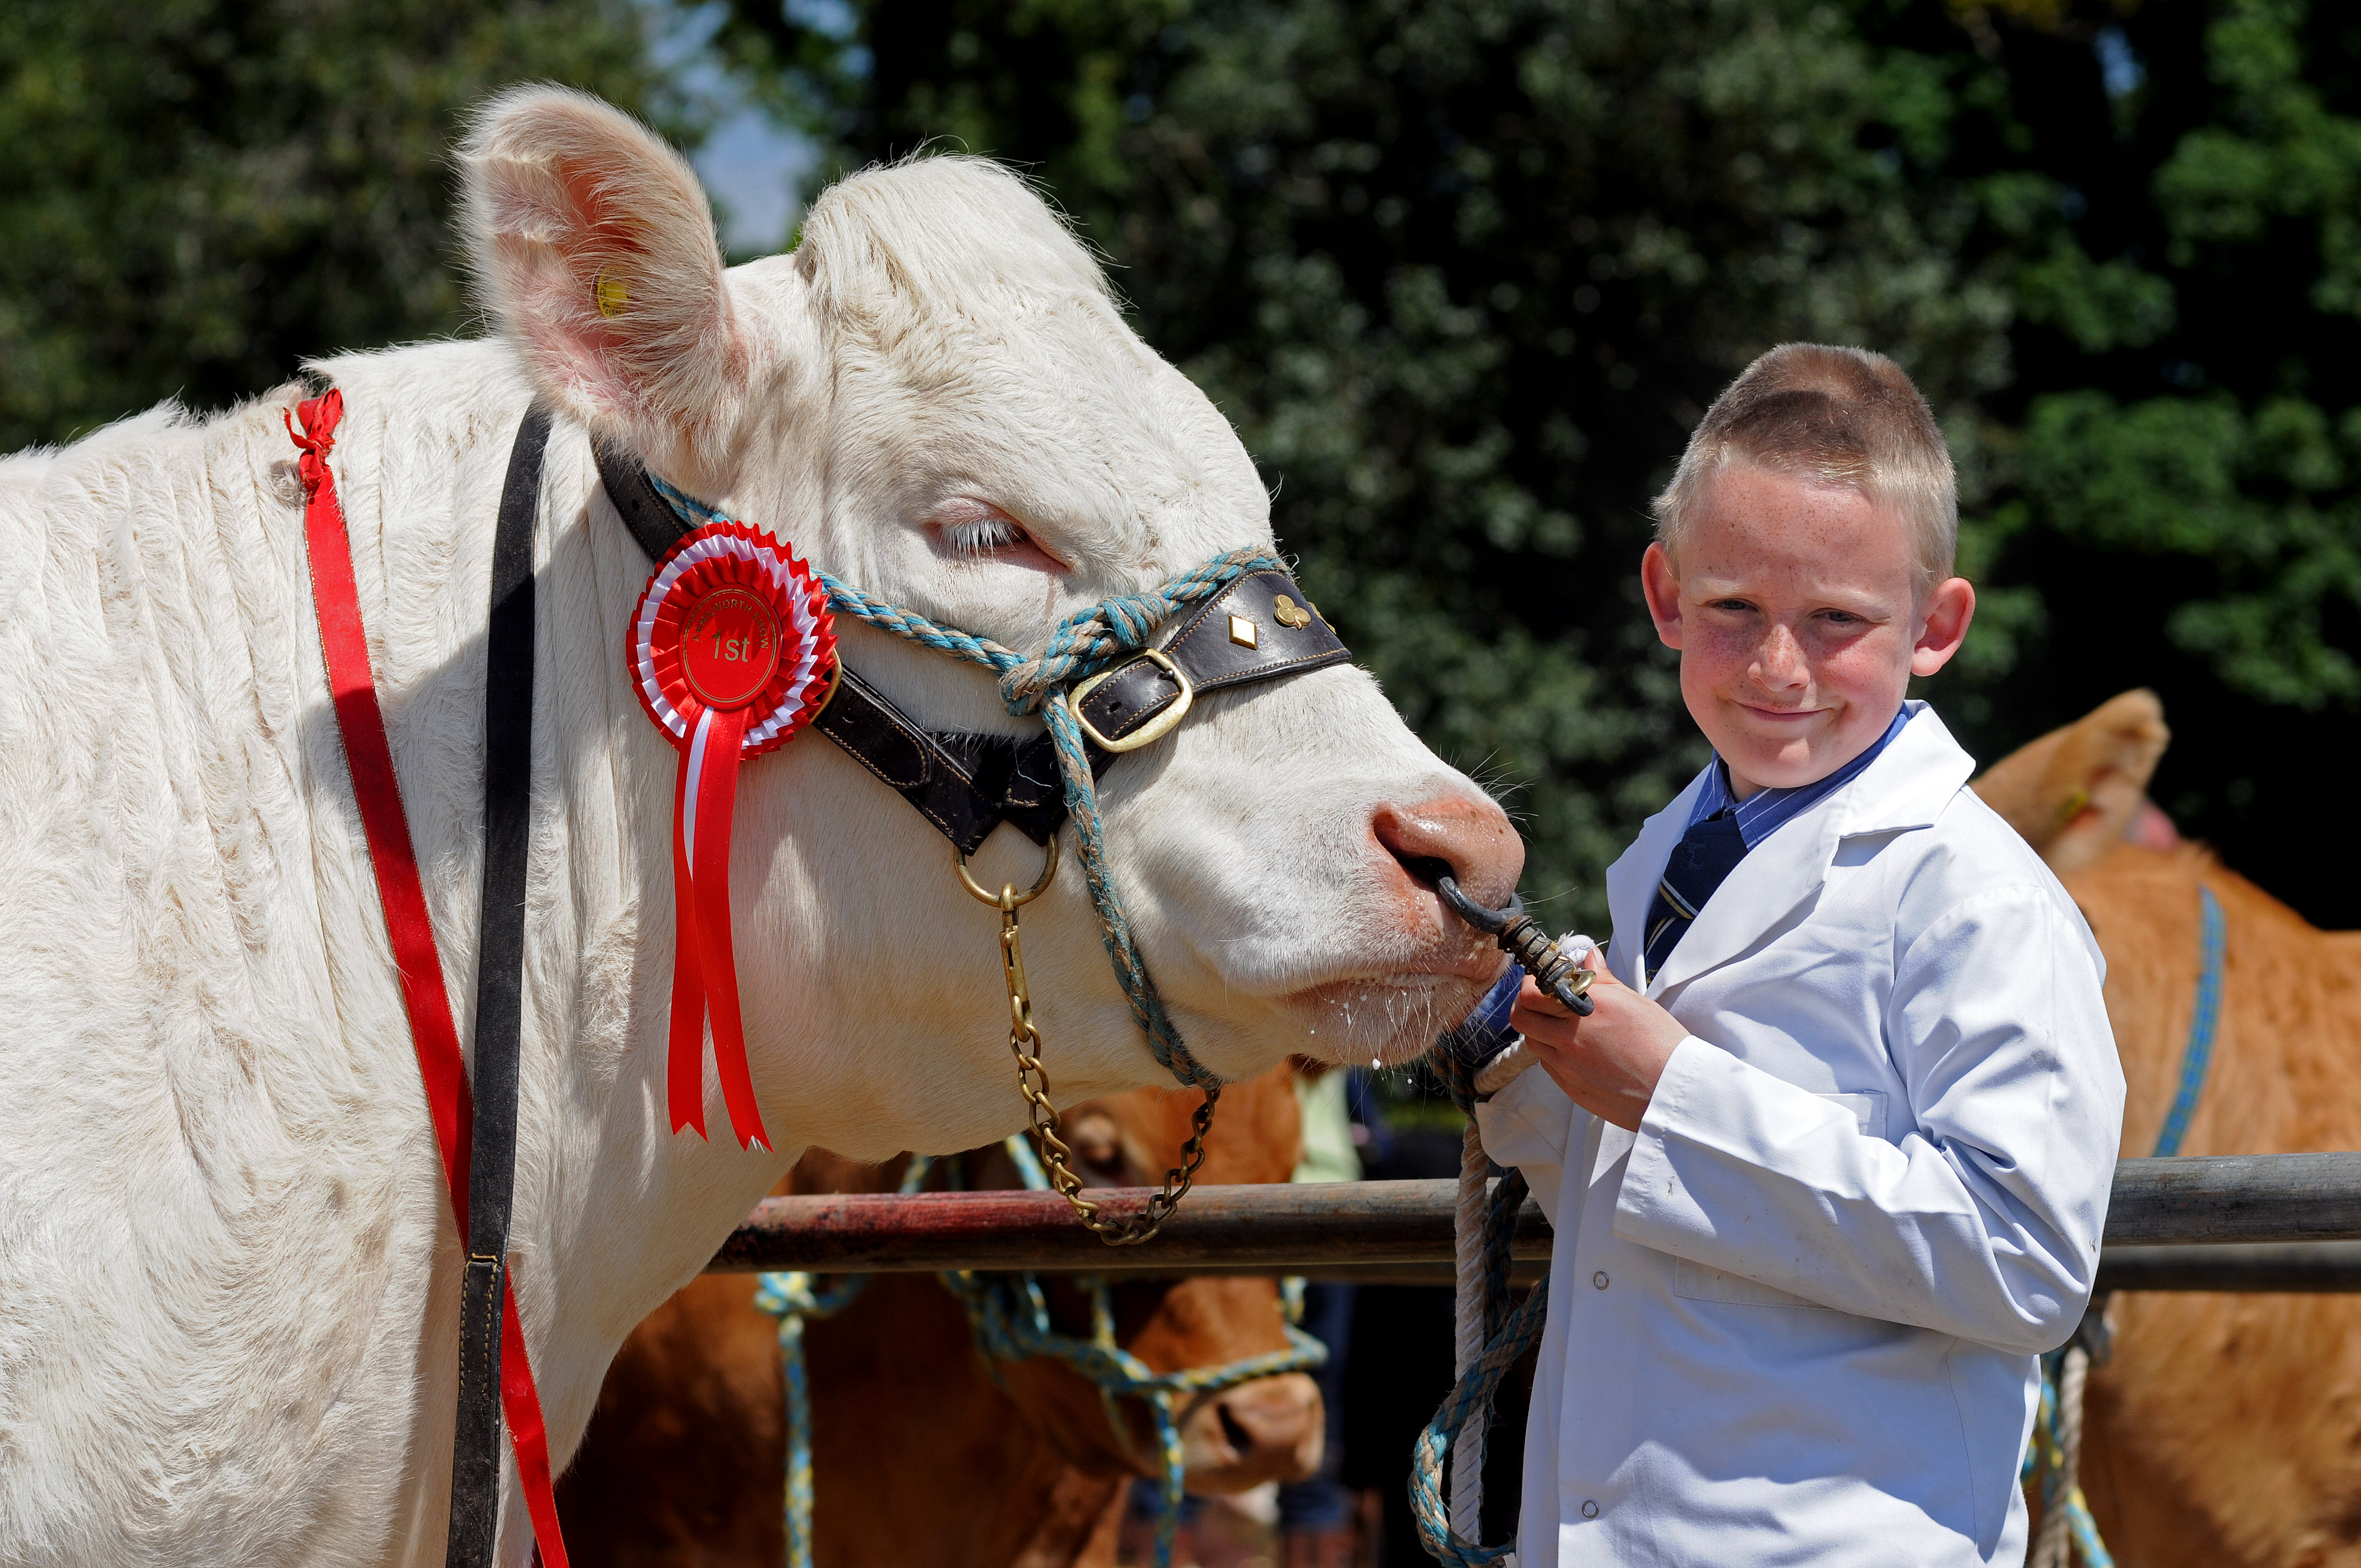 The Kenilworth Show takes place on June 7